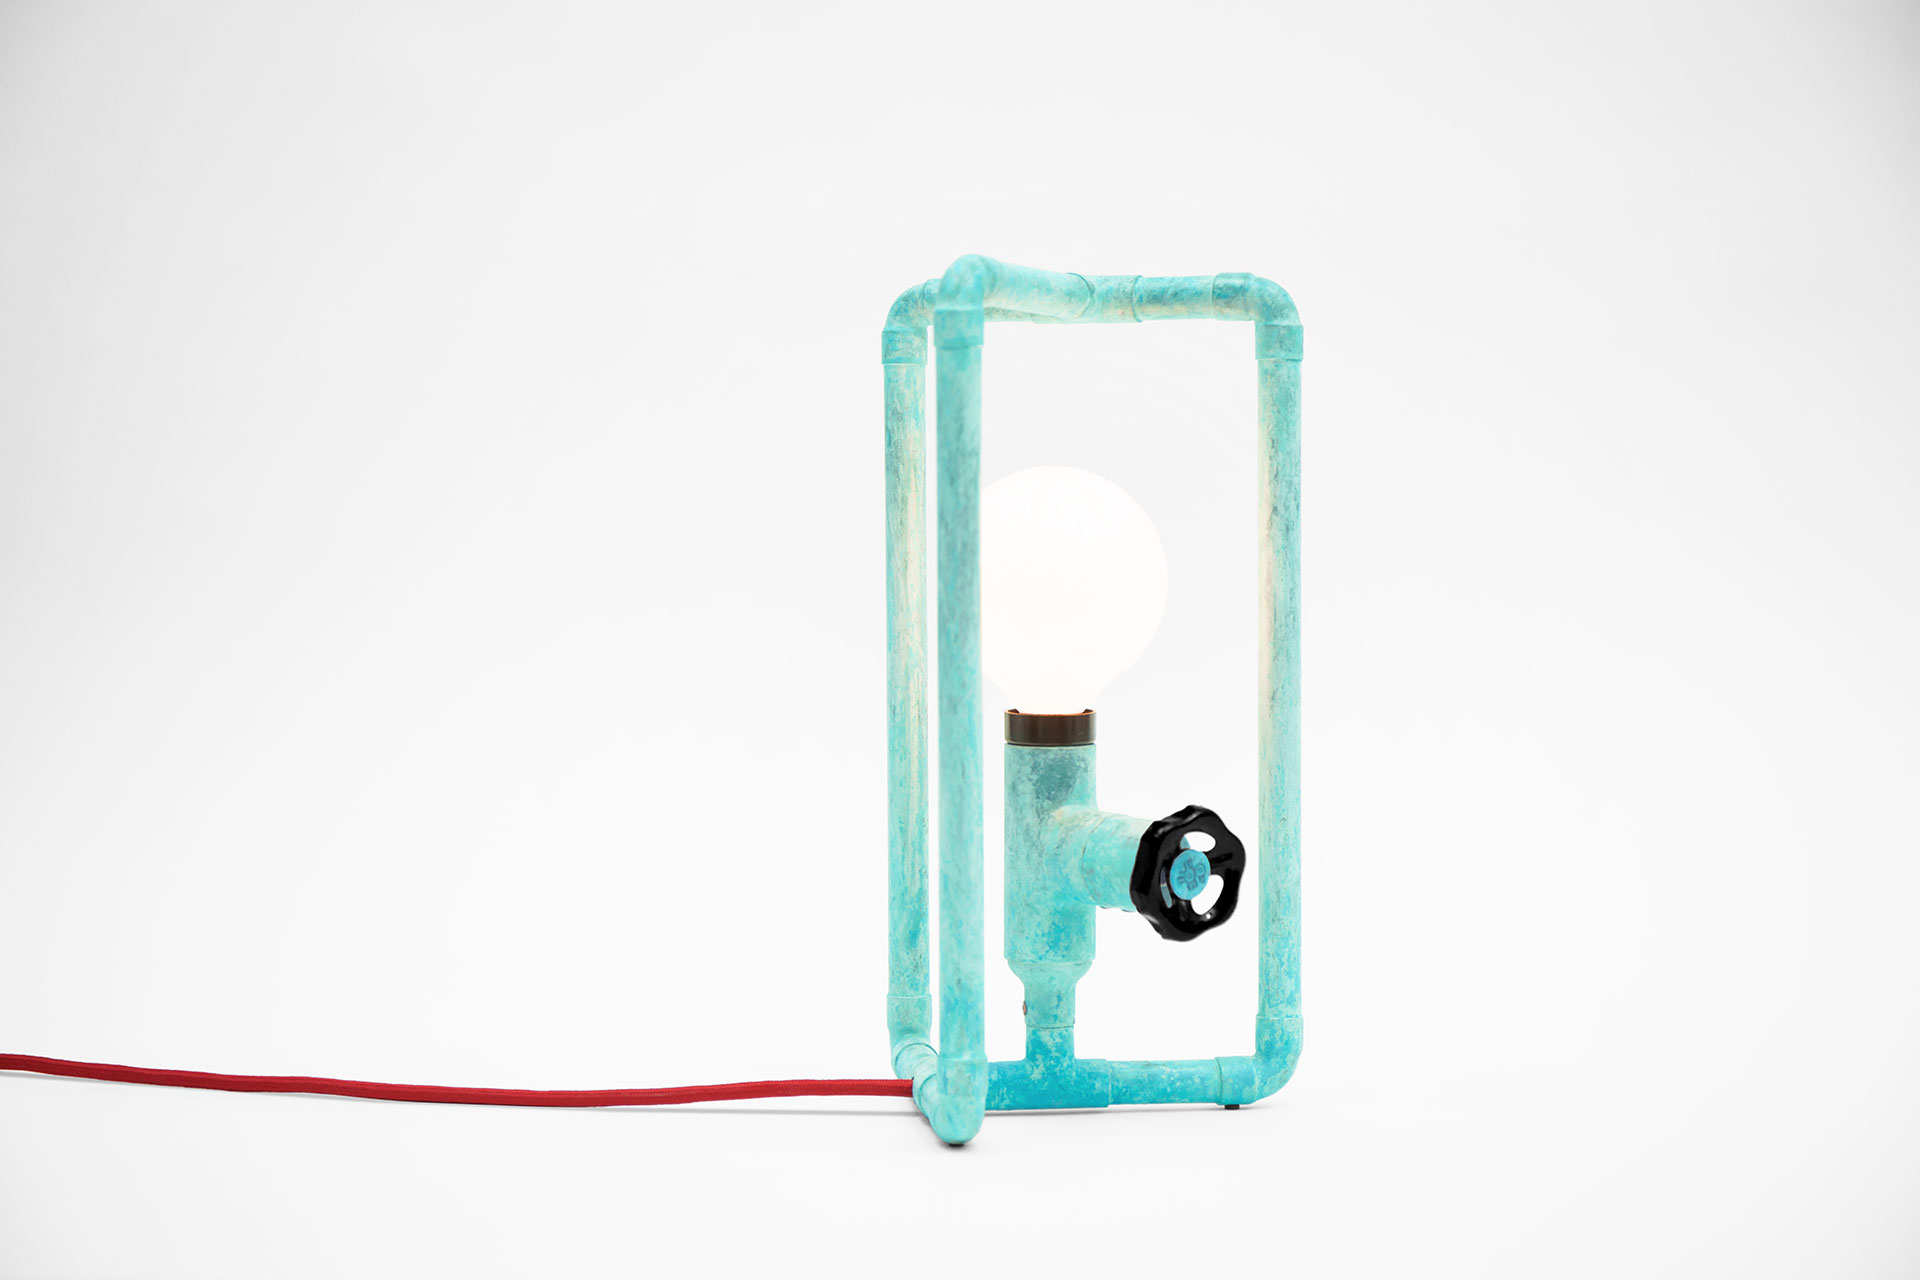 Gadget table lamp in turquoise color with funny knob dimmer inspired by industrial design